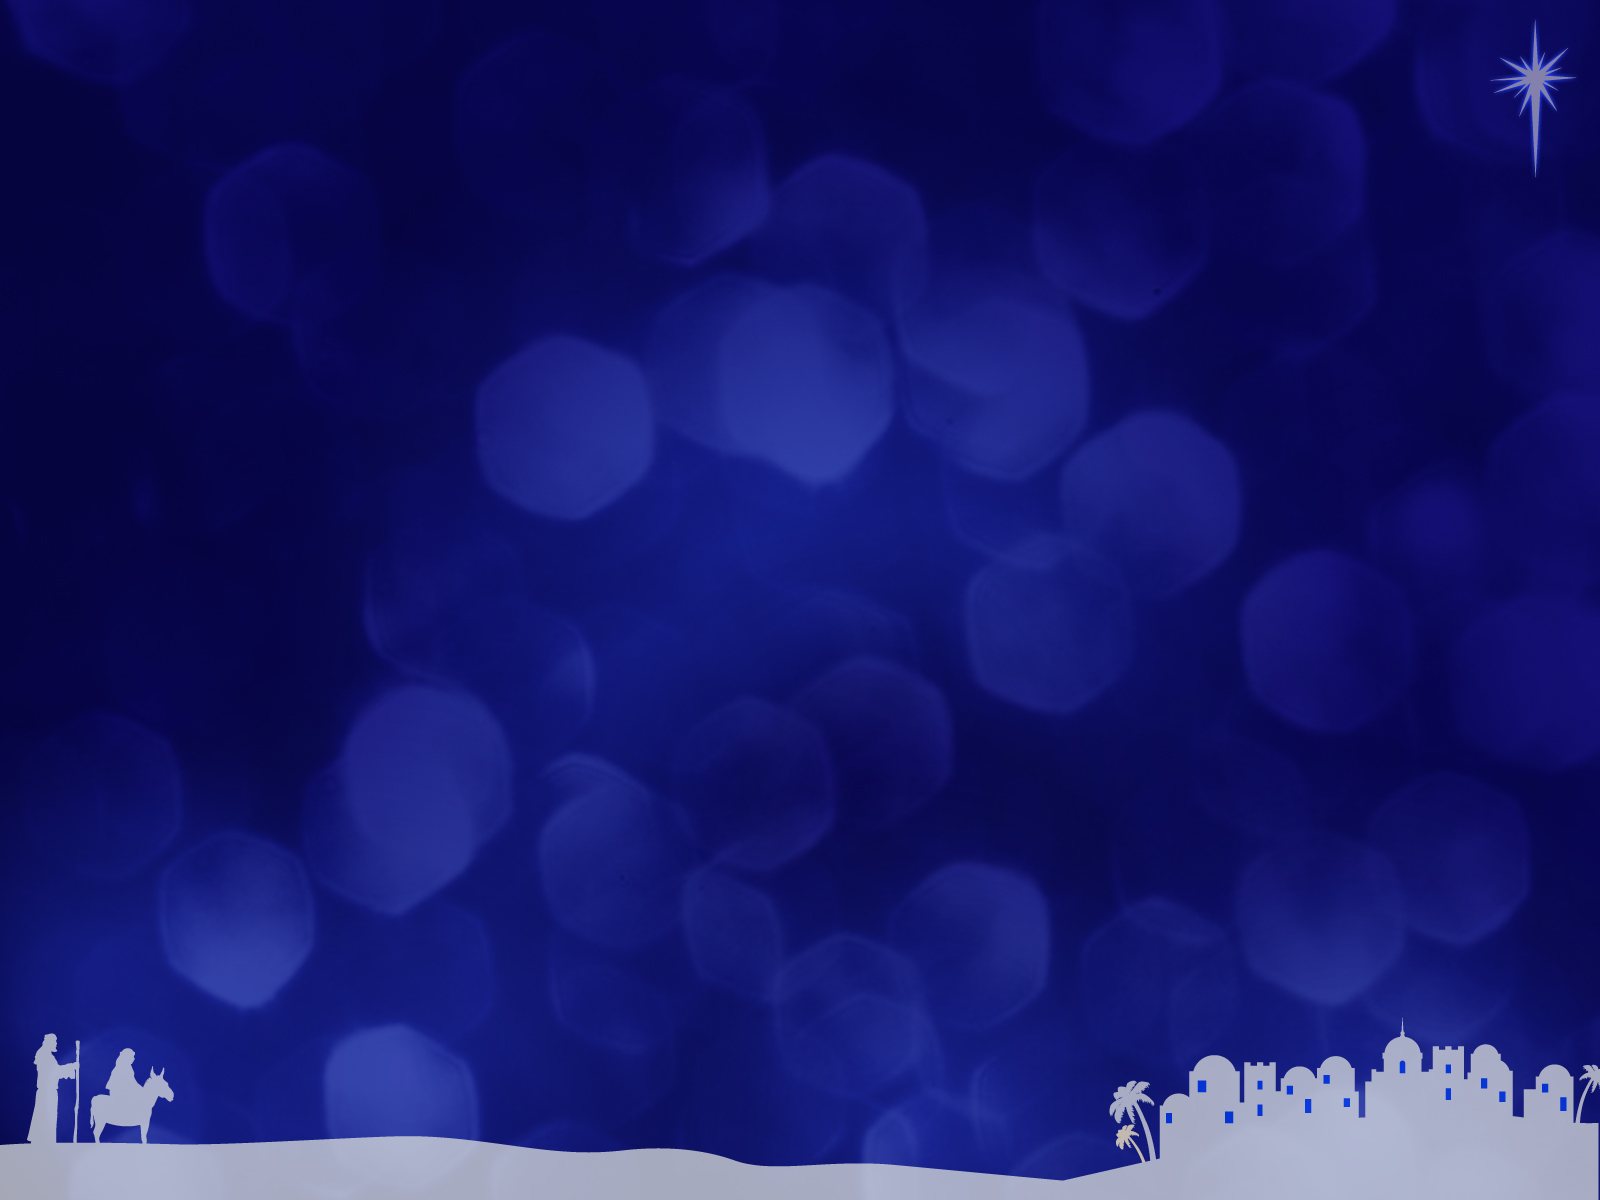 Advent wallpaper free wallpapersafari for Worship schedule template